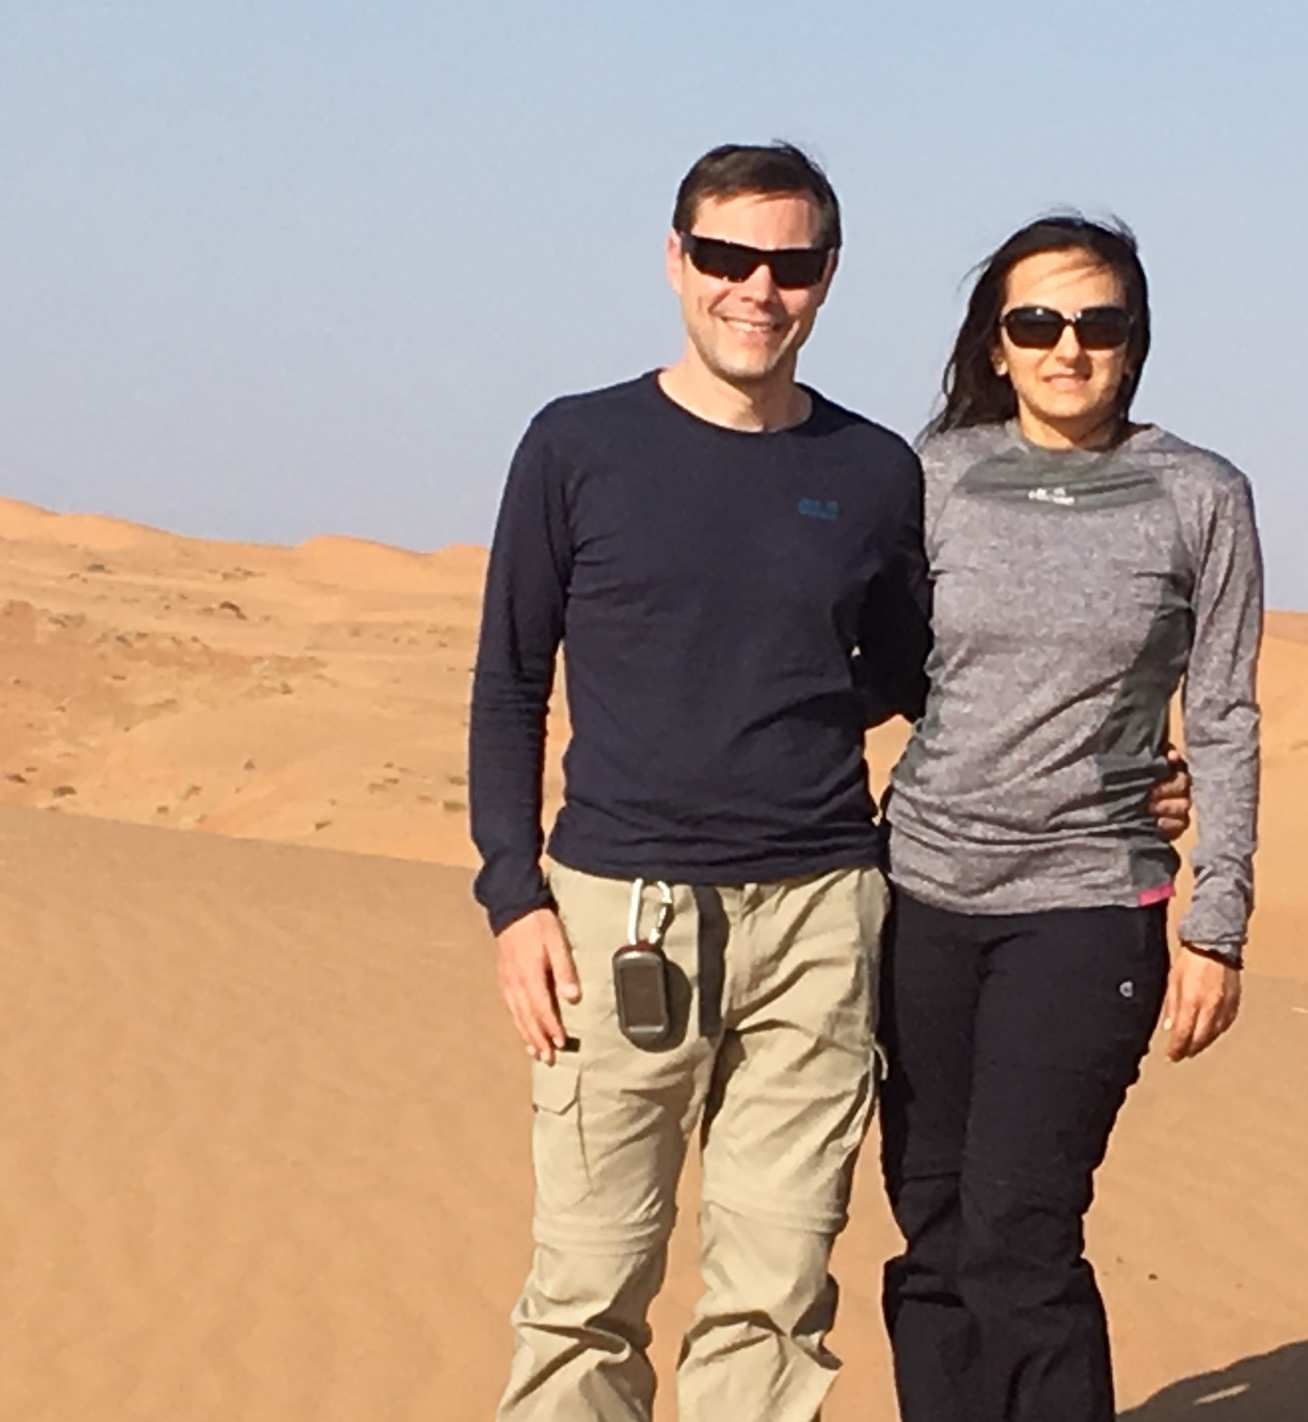 Photo of Dr John with co-author Saira Khan in the Wahiba Sands region of Oman.